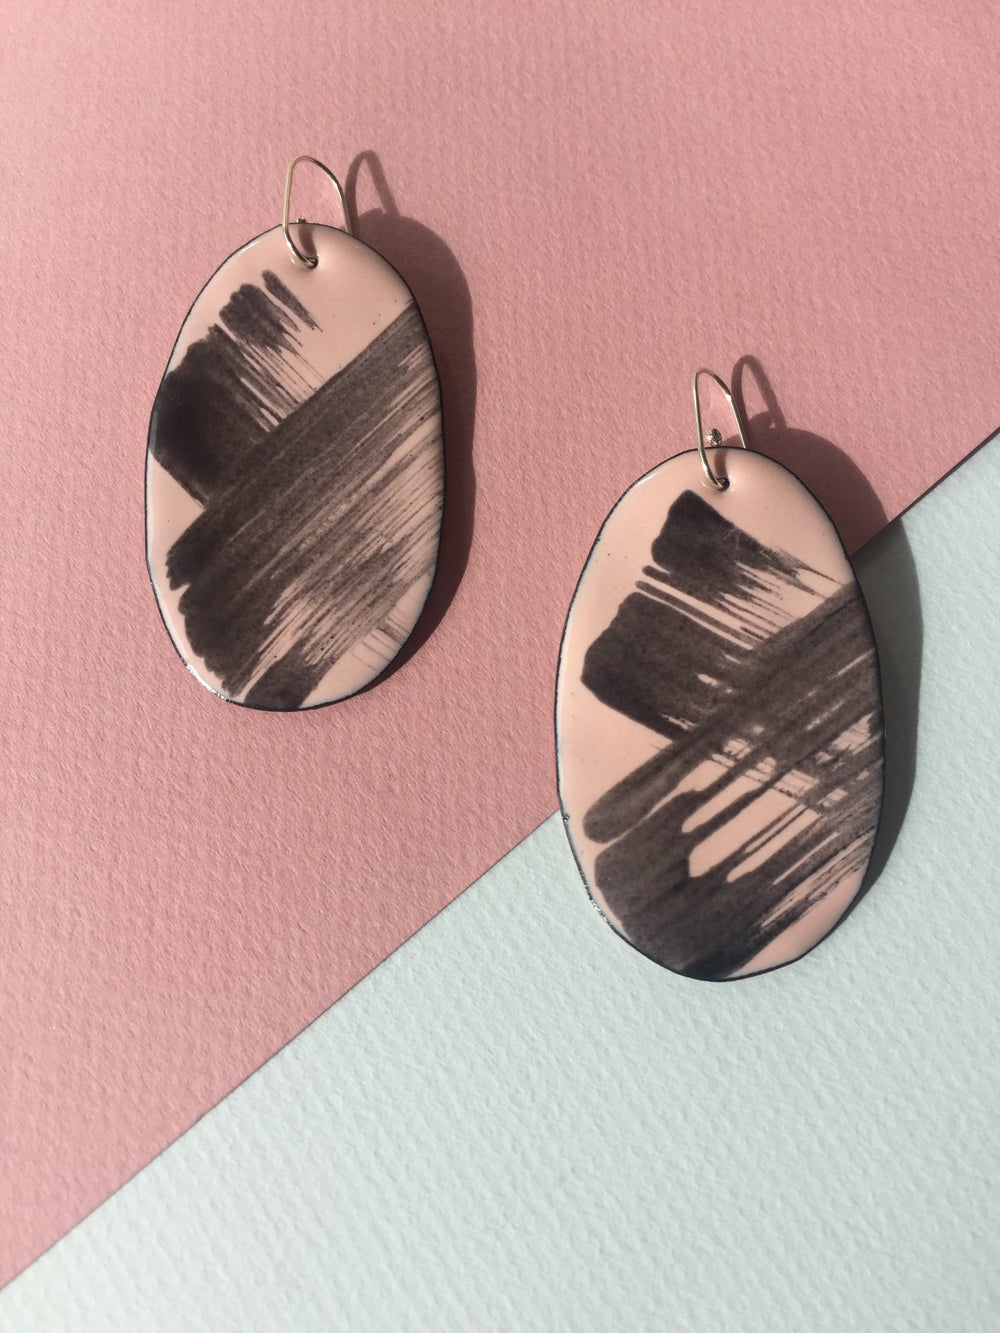 Image of Brush stroke earrings in blush pink - Large